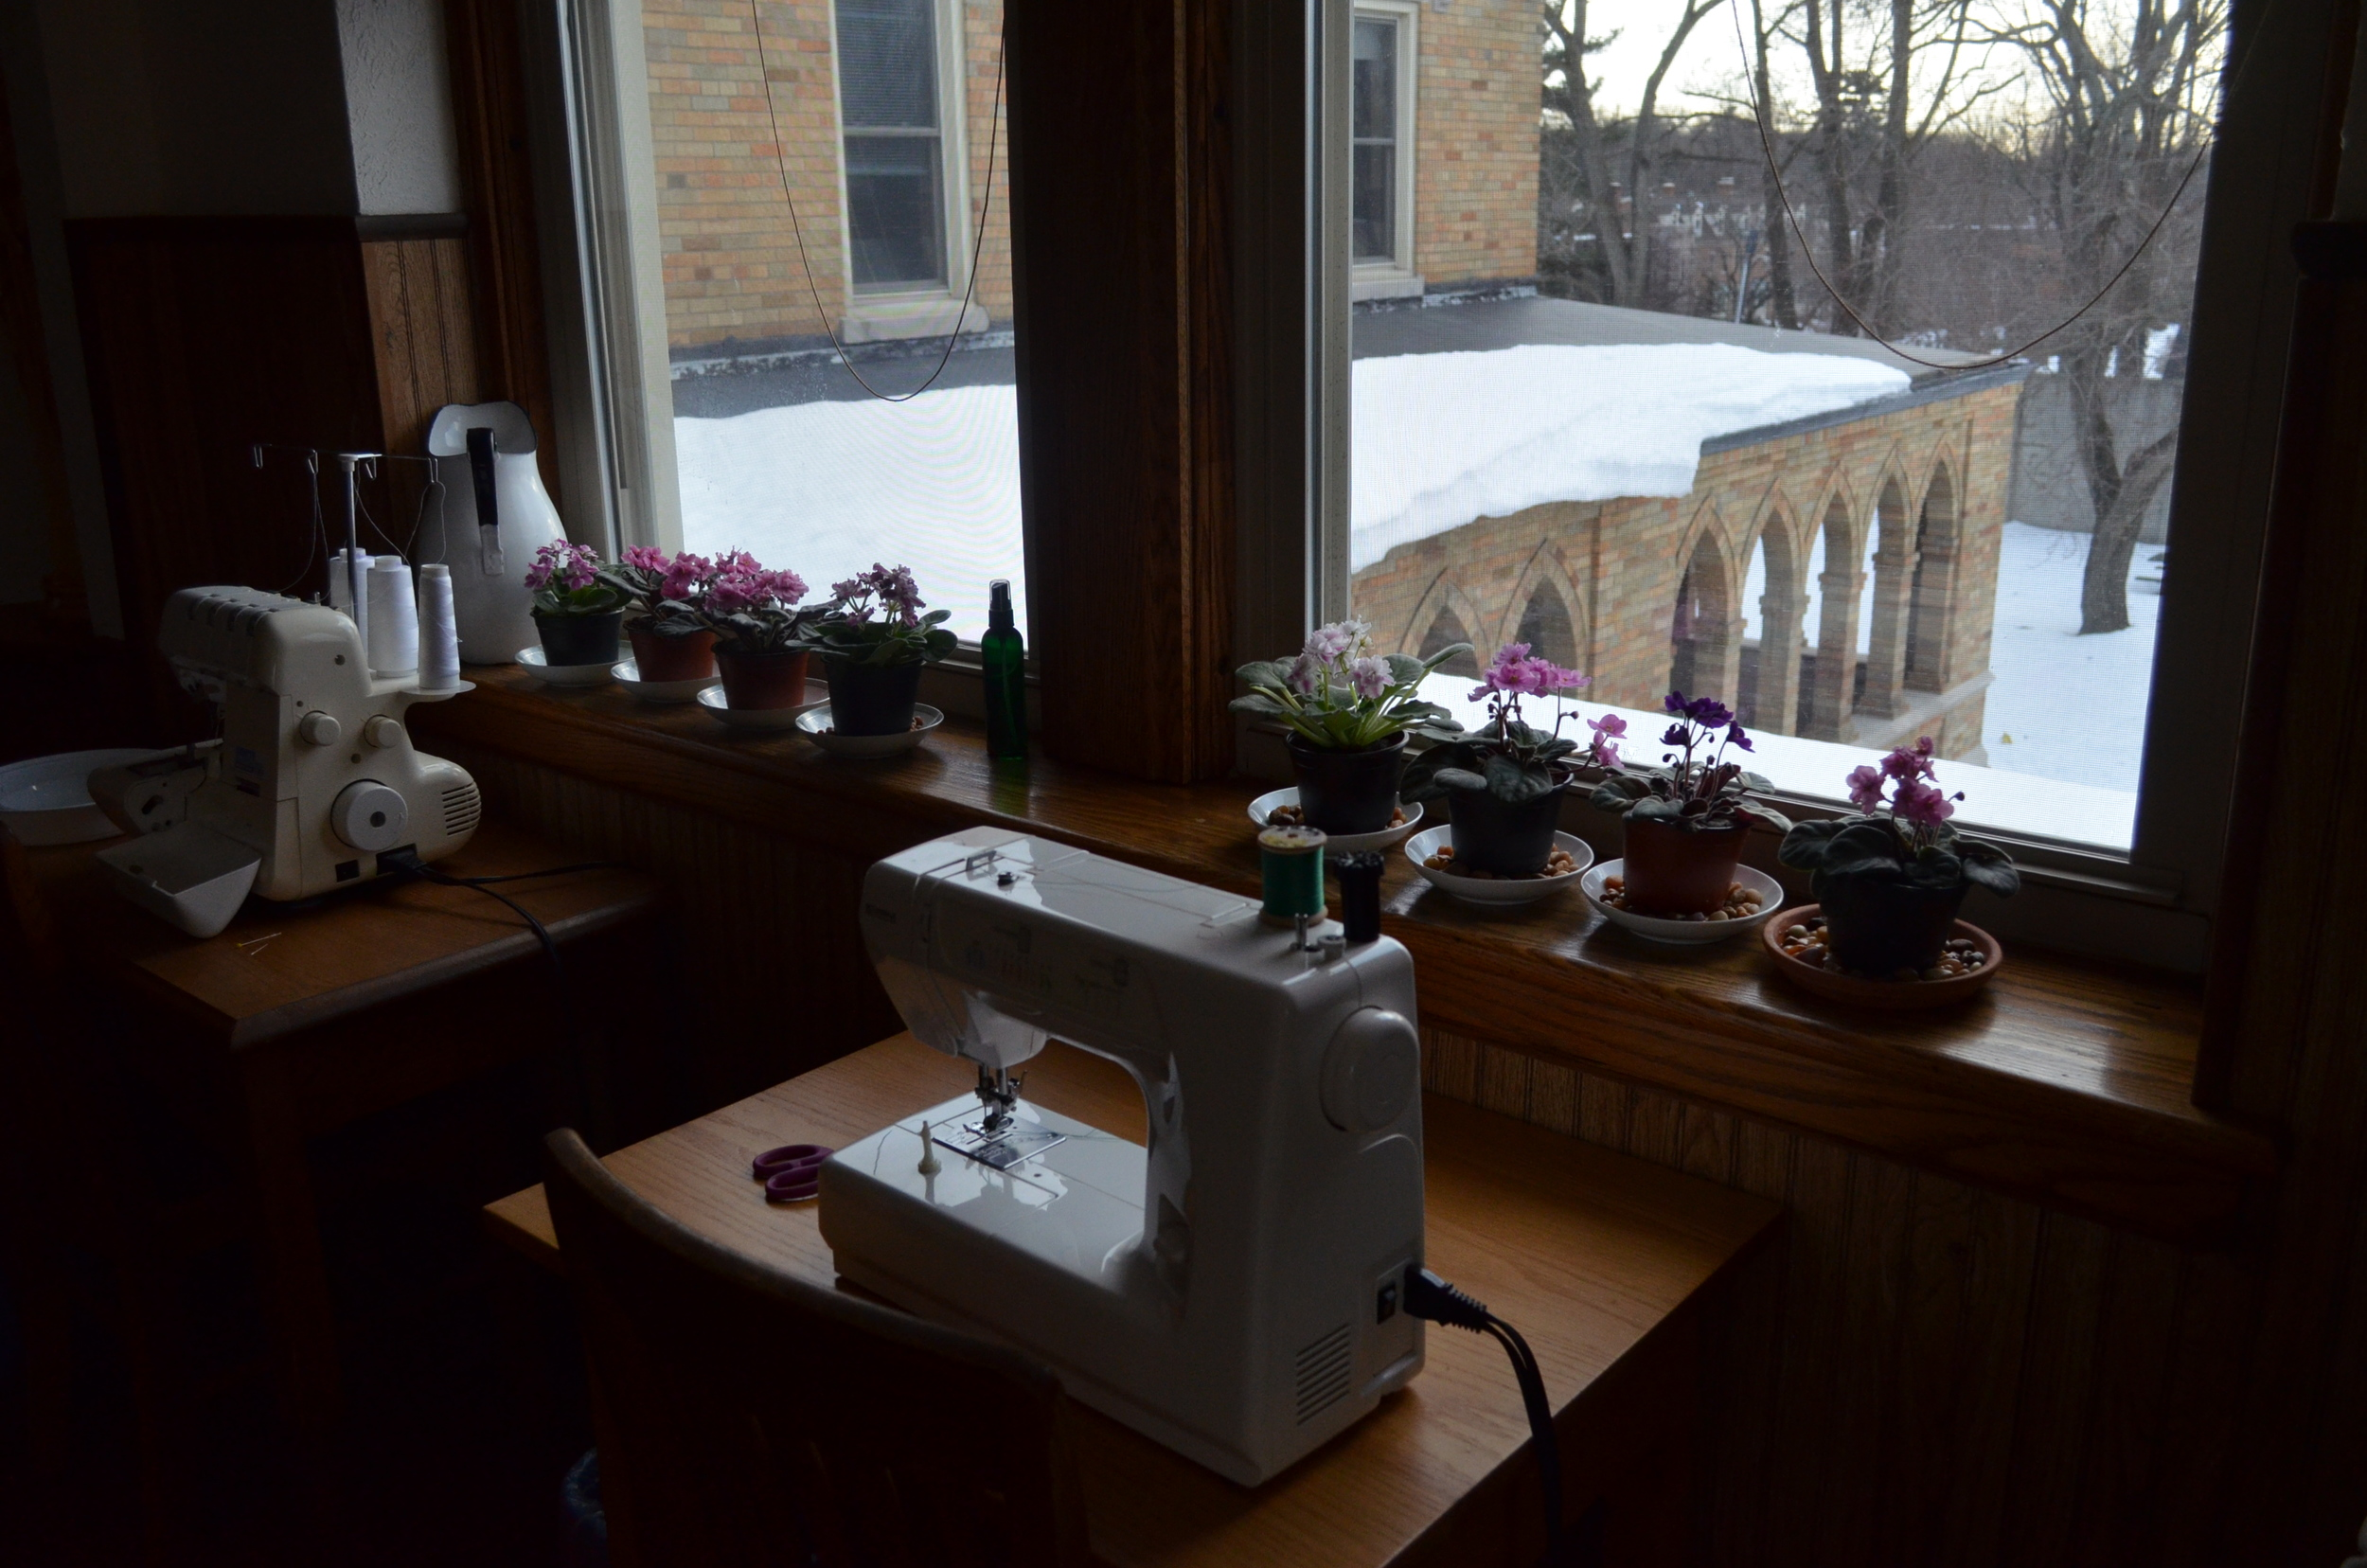 African Violets in the novitiate...we are ready for Spring!